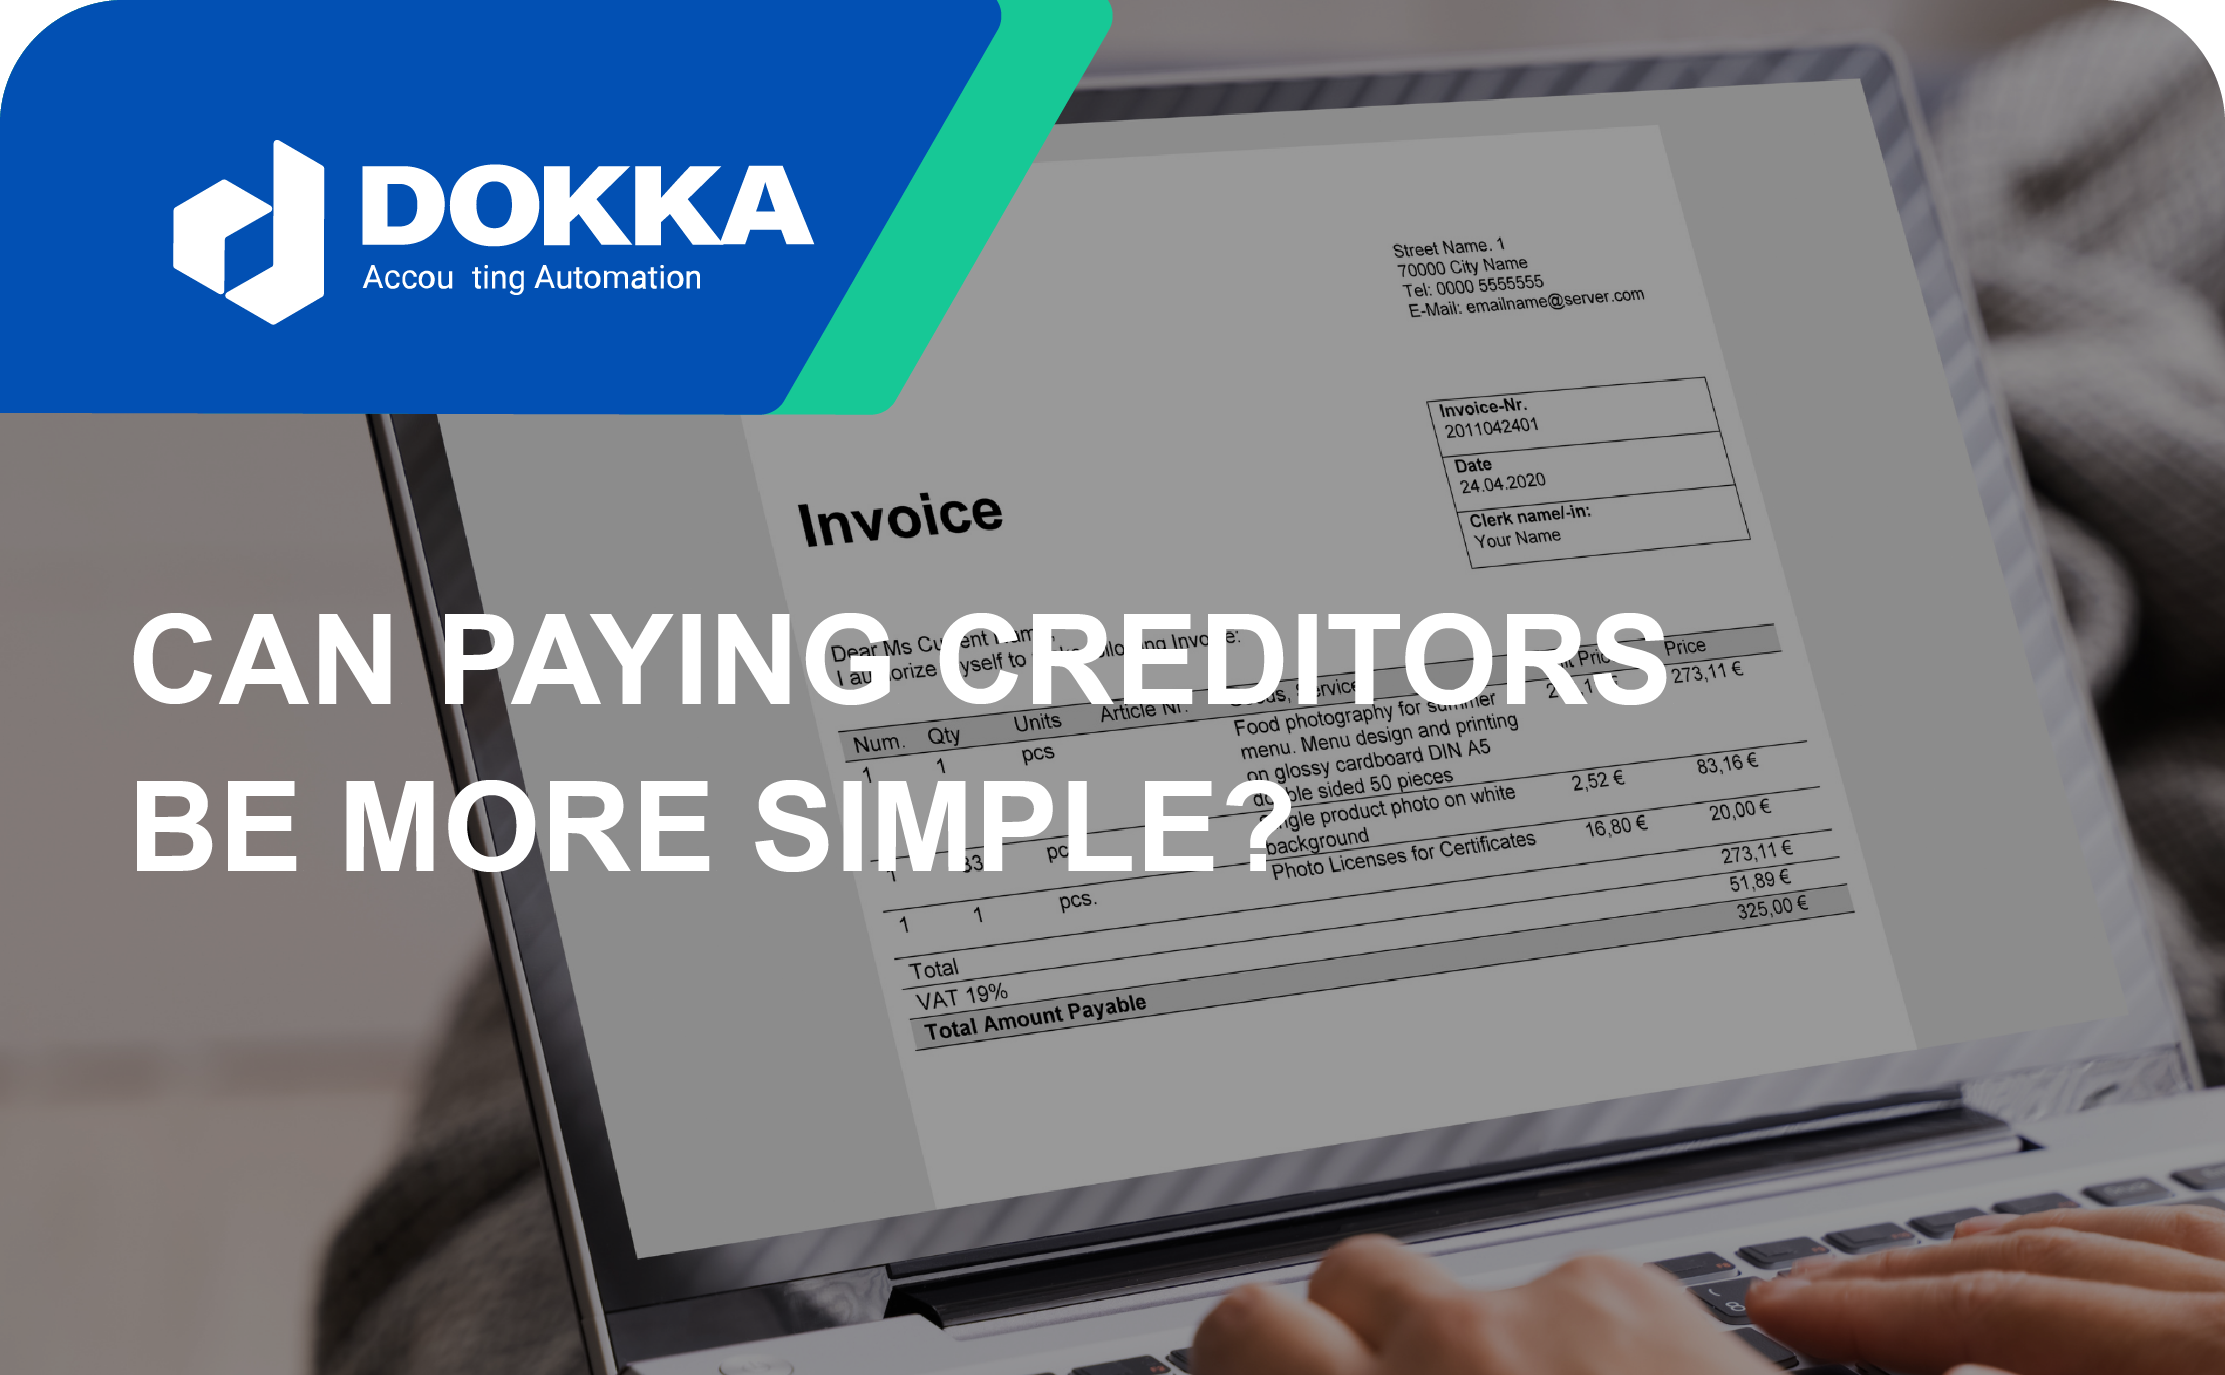 Can paying creditors be more simple?